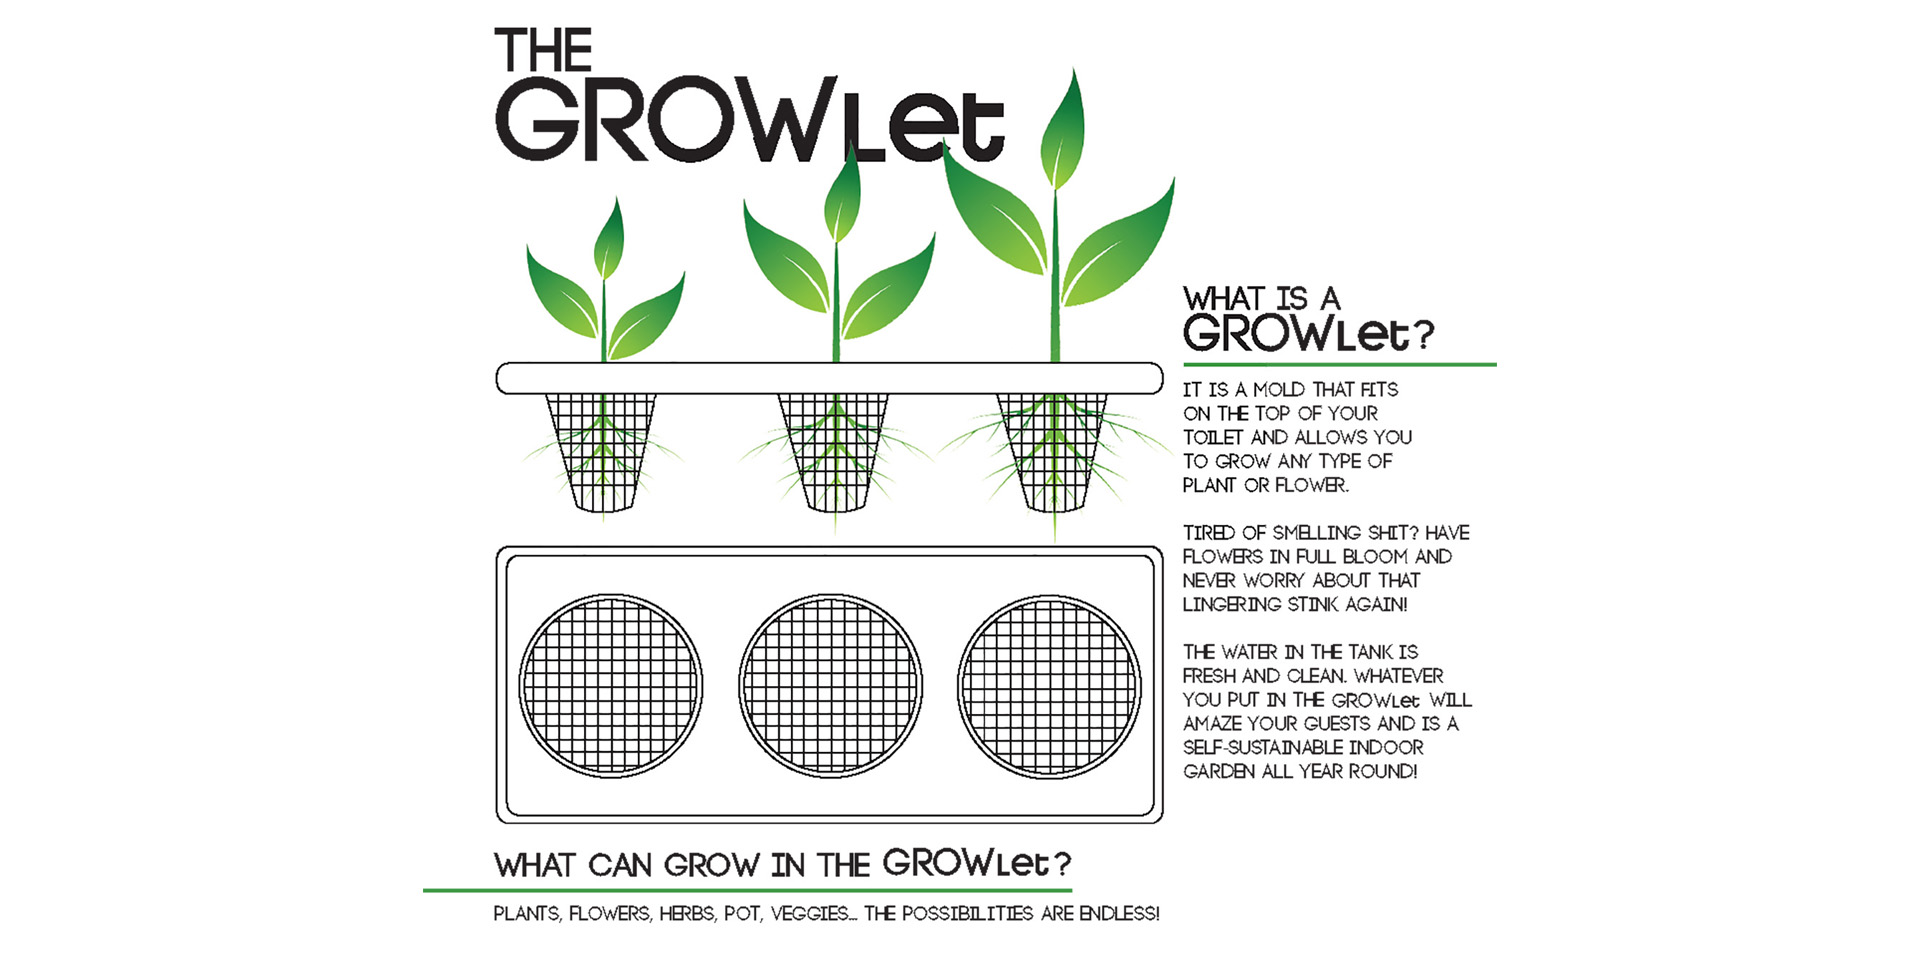 The Growlet